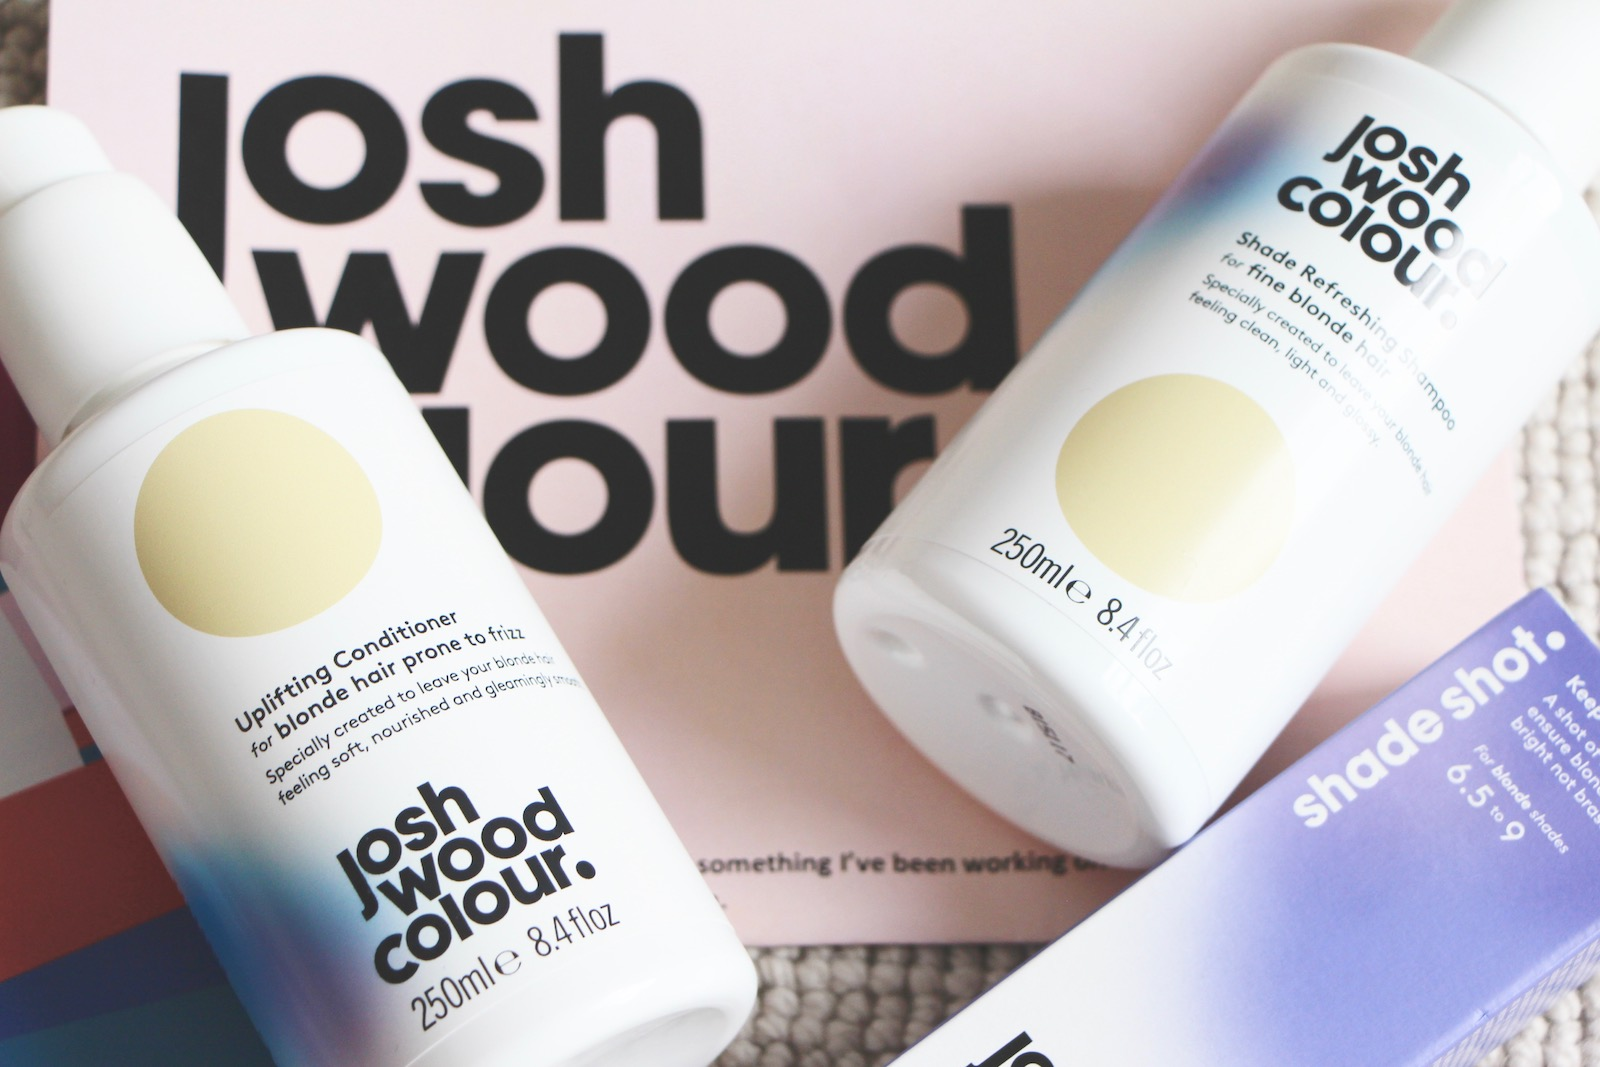 josh wood blonde shampoo and conditioner